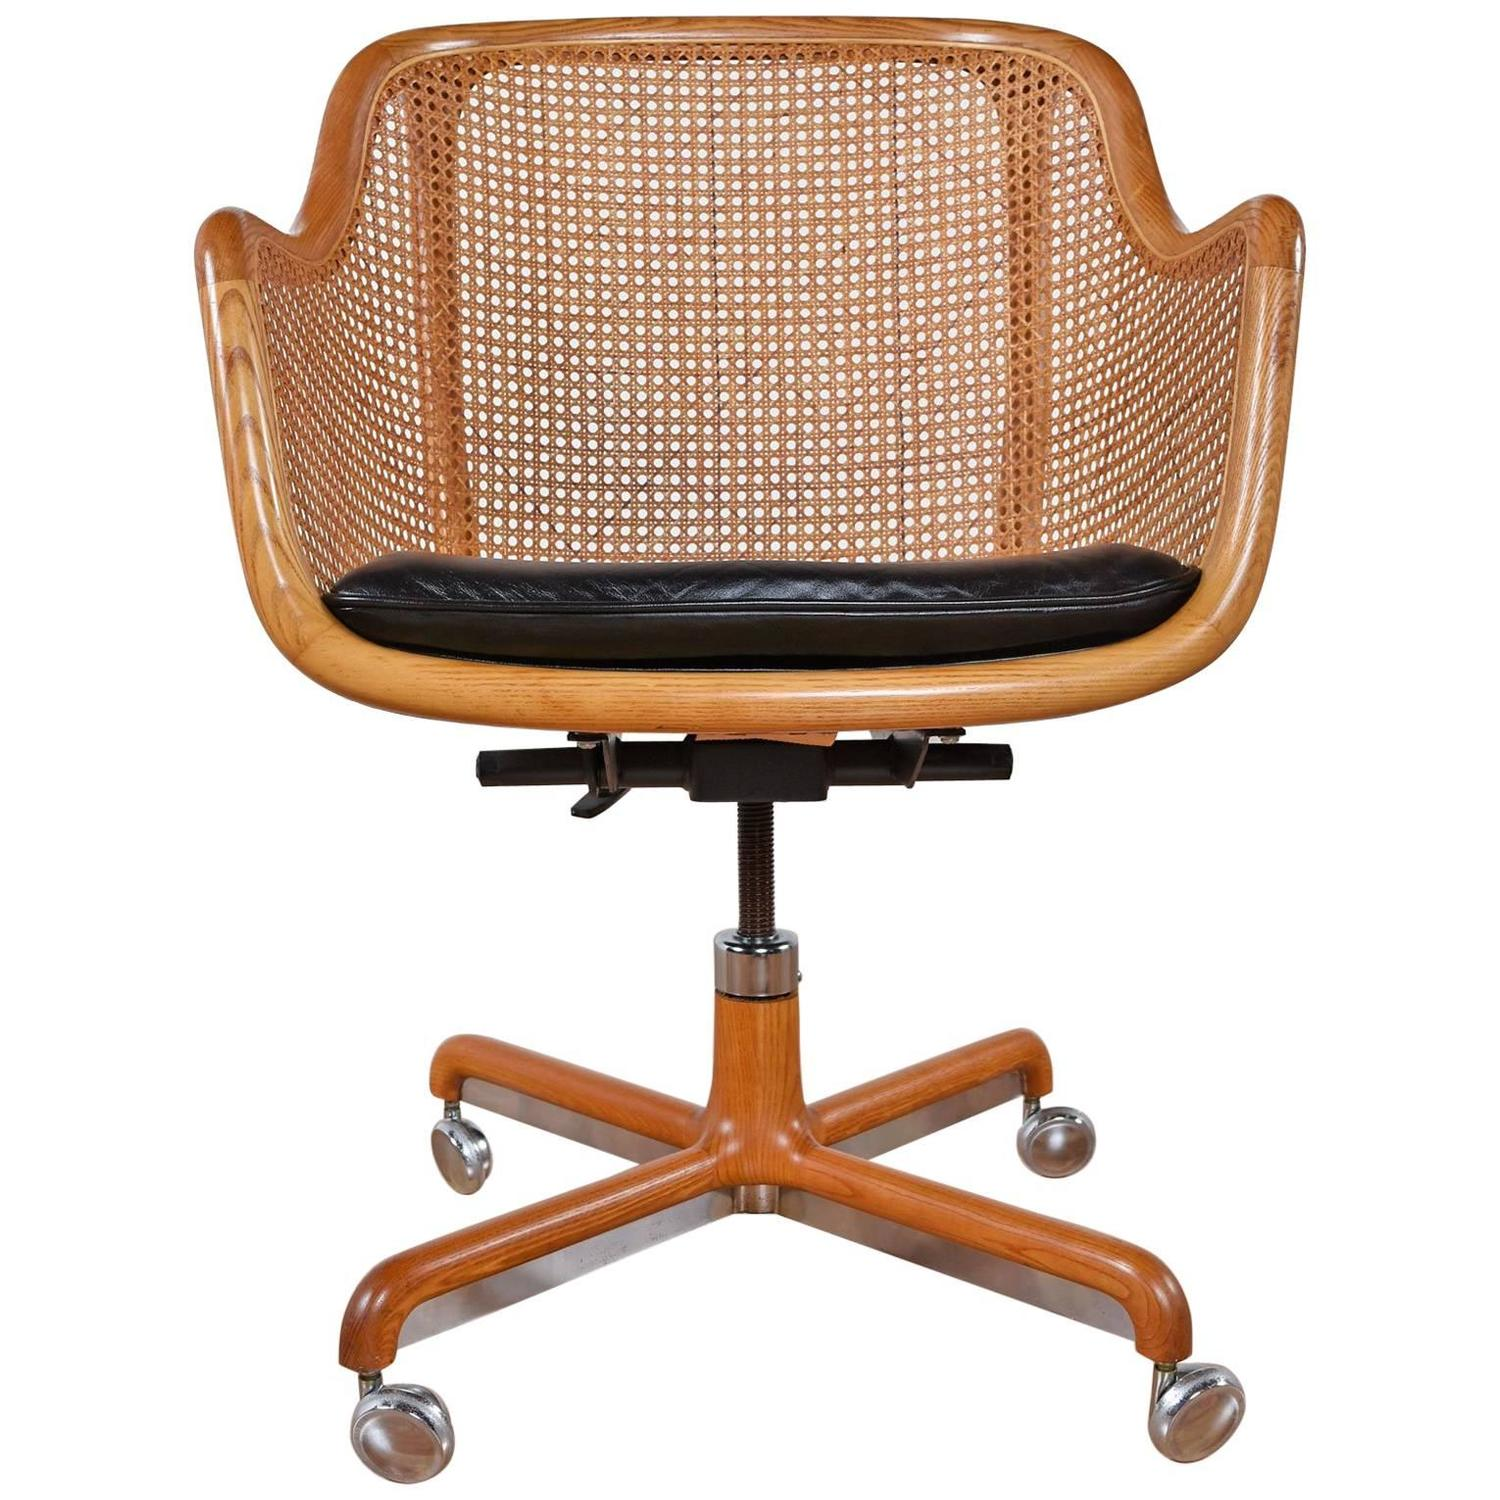 Mid century modern cane swivel desk chair by ward bennett for Modern swivel chair